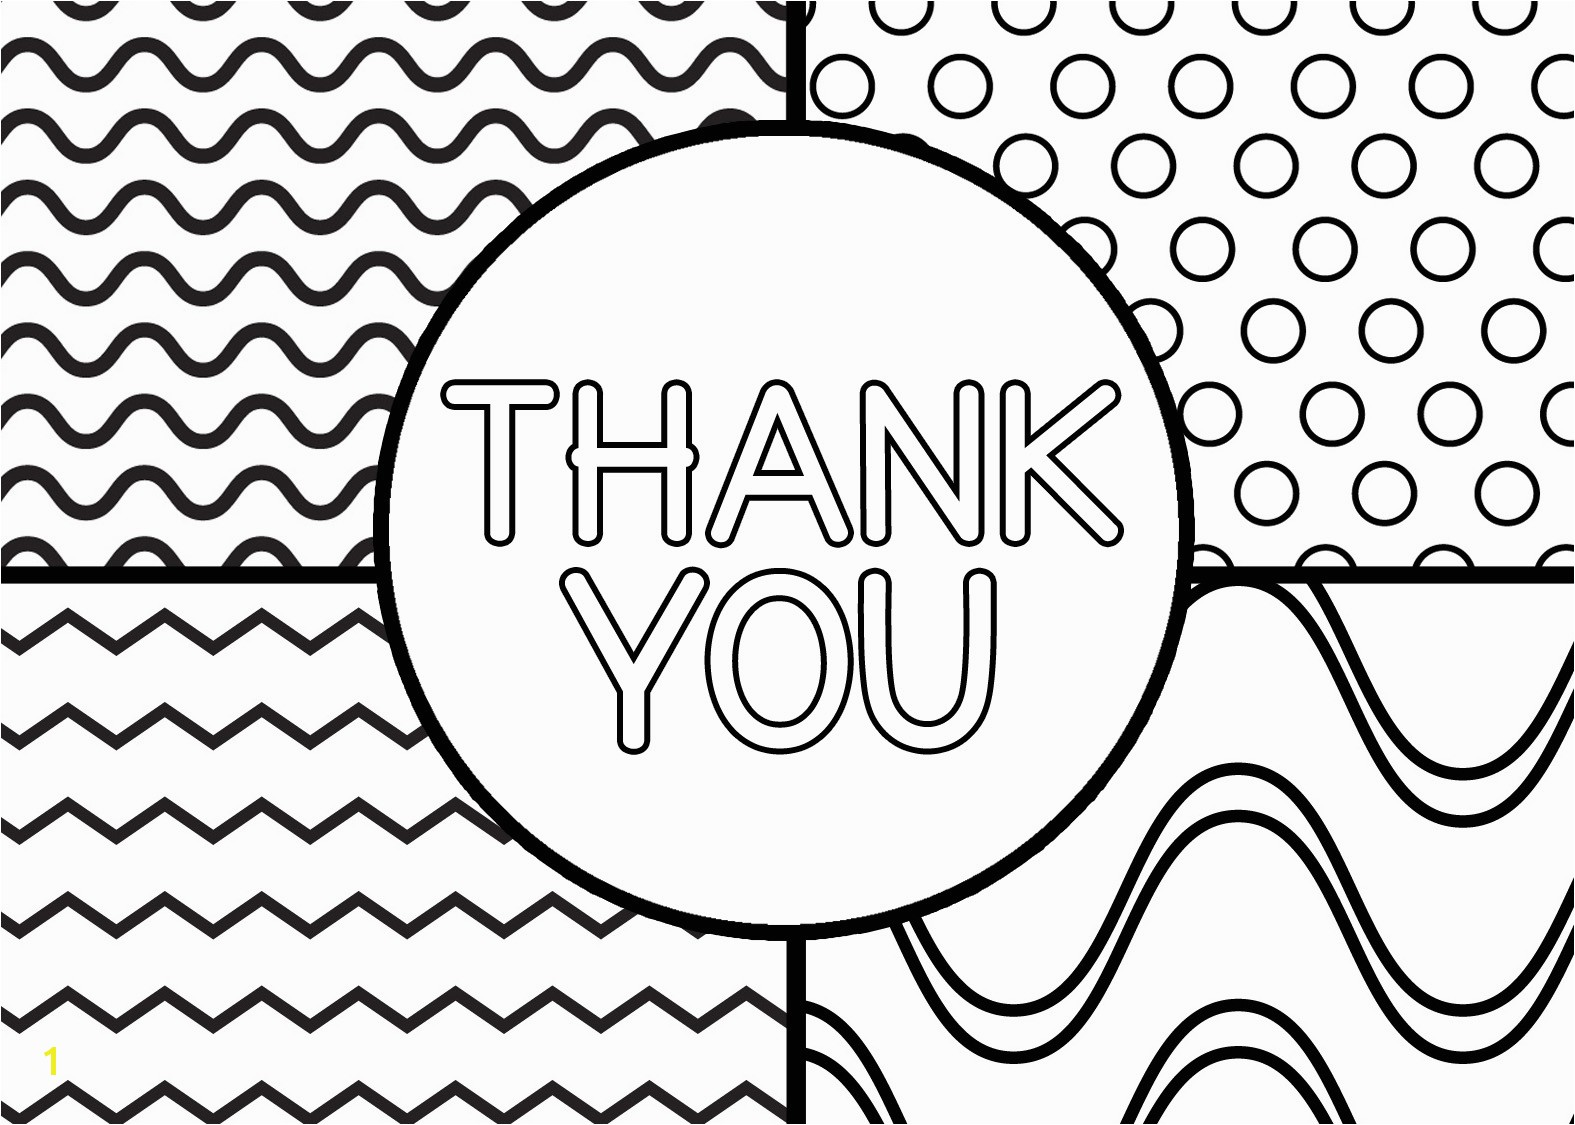 Thank You Coloring Page Thank You Coloring Sheet Trend With Image Ideas 10